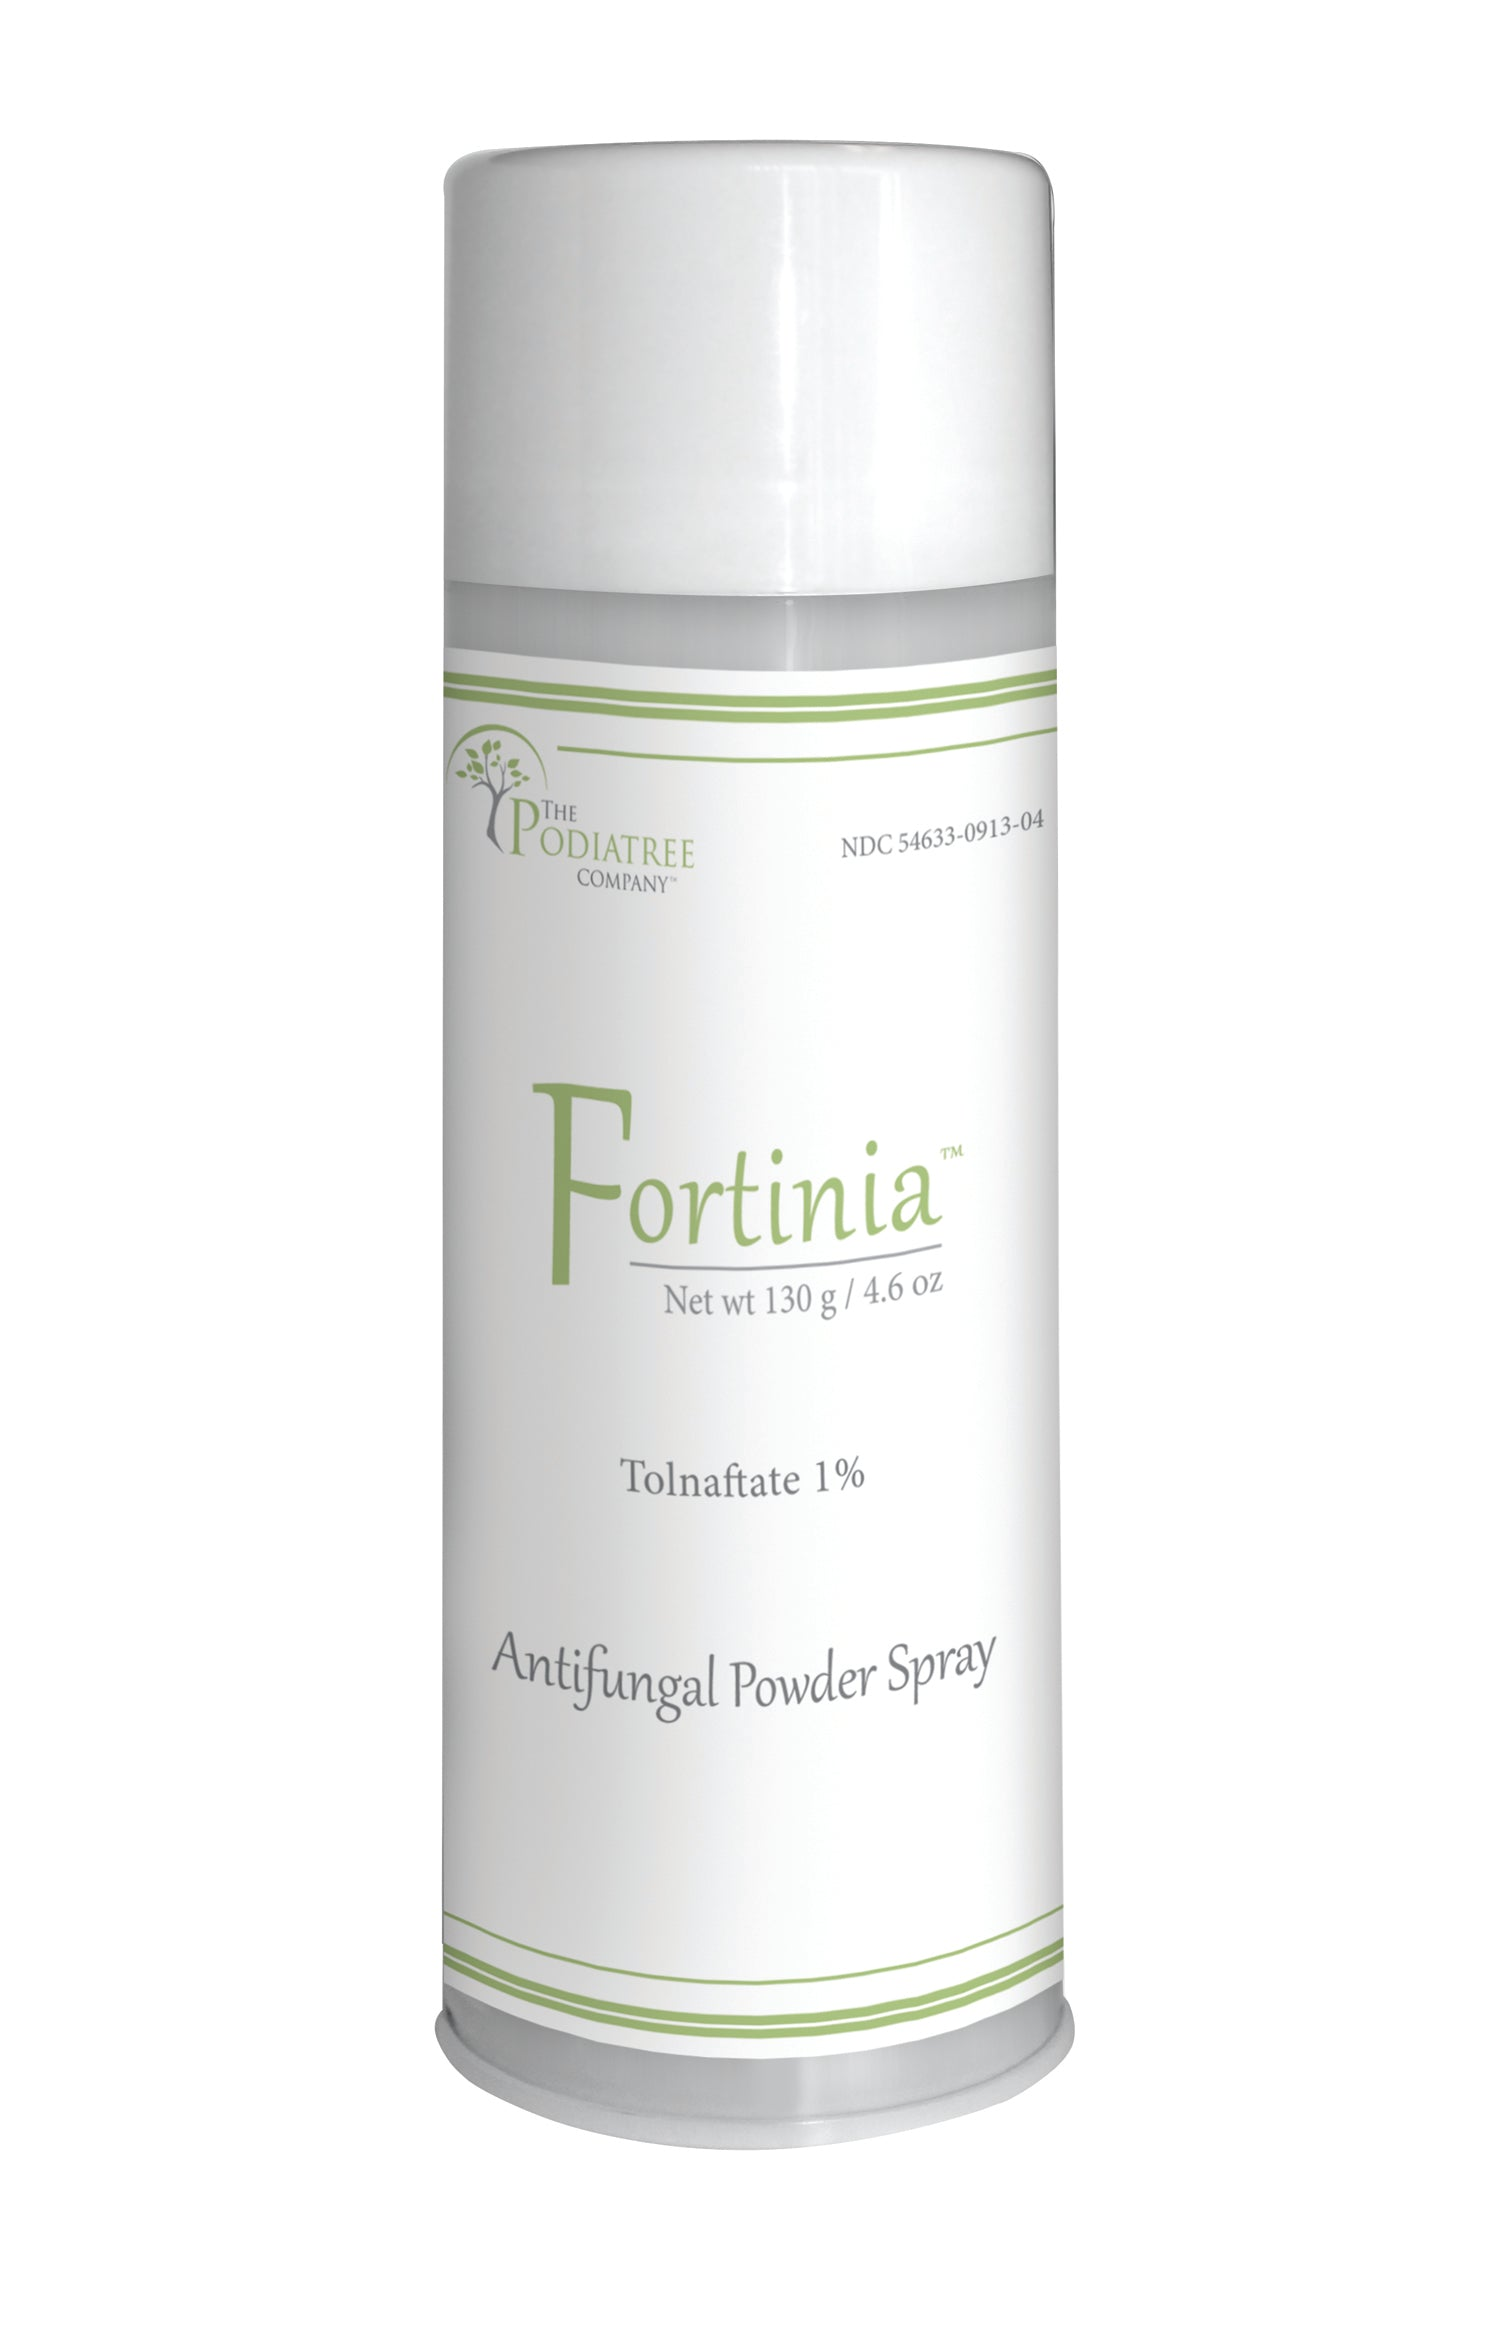 Fortinia Antifungal Powder Spray